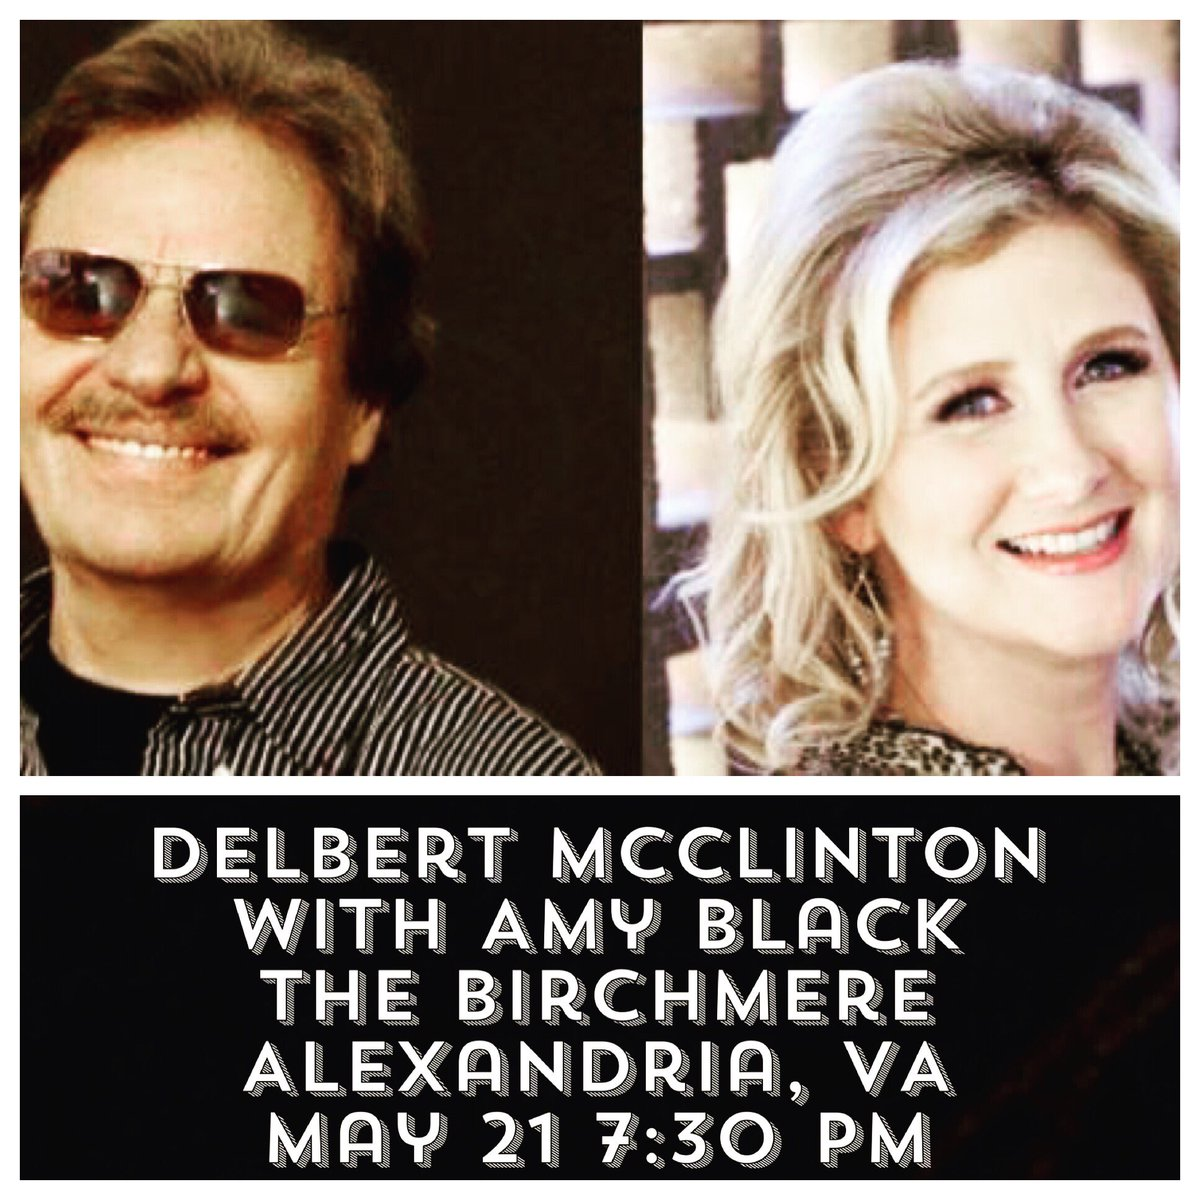 Delbert McClinton & Amy Black at The Birchmere in Alexandria, virginia